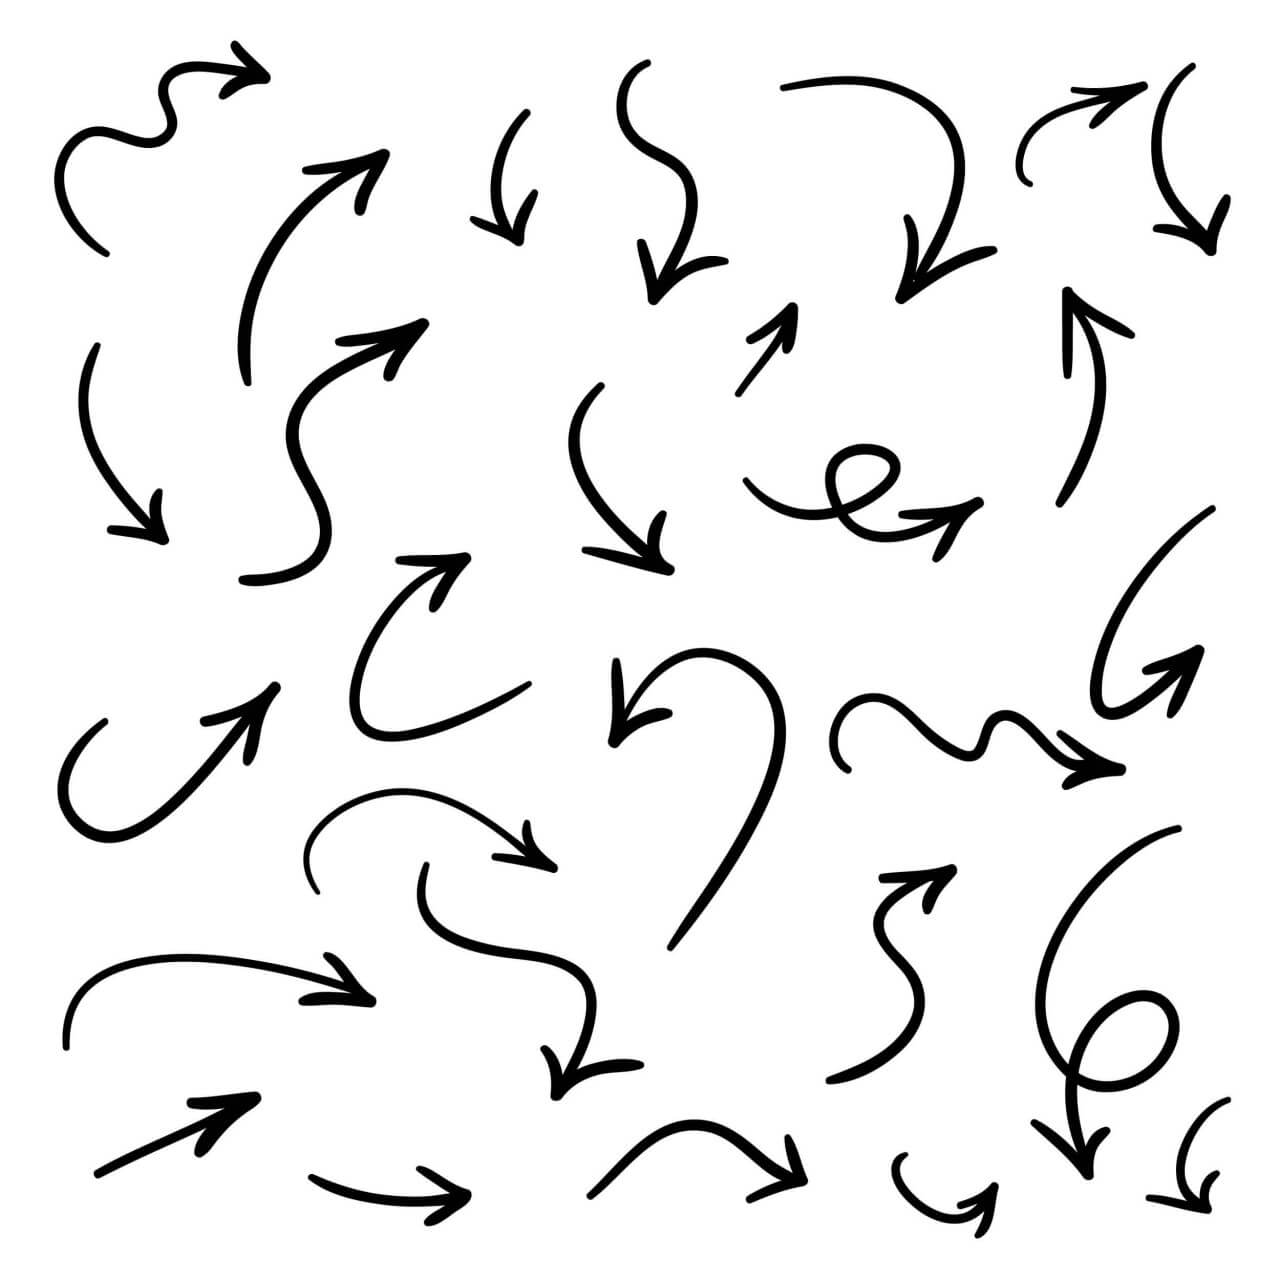 1280x1280 Free Vector Isolated Vector Hand Drawn Arrows Set On A White